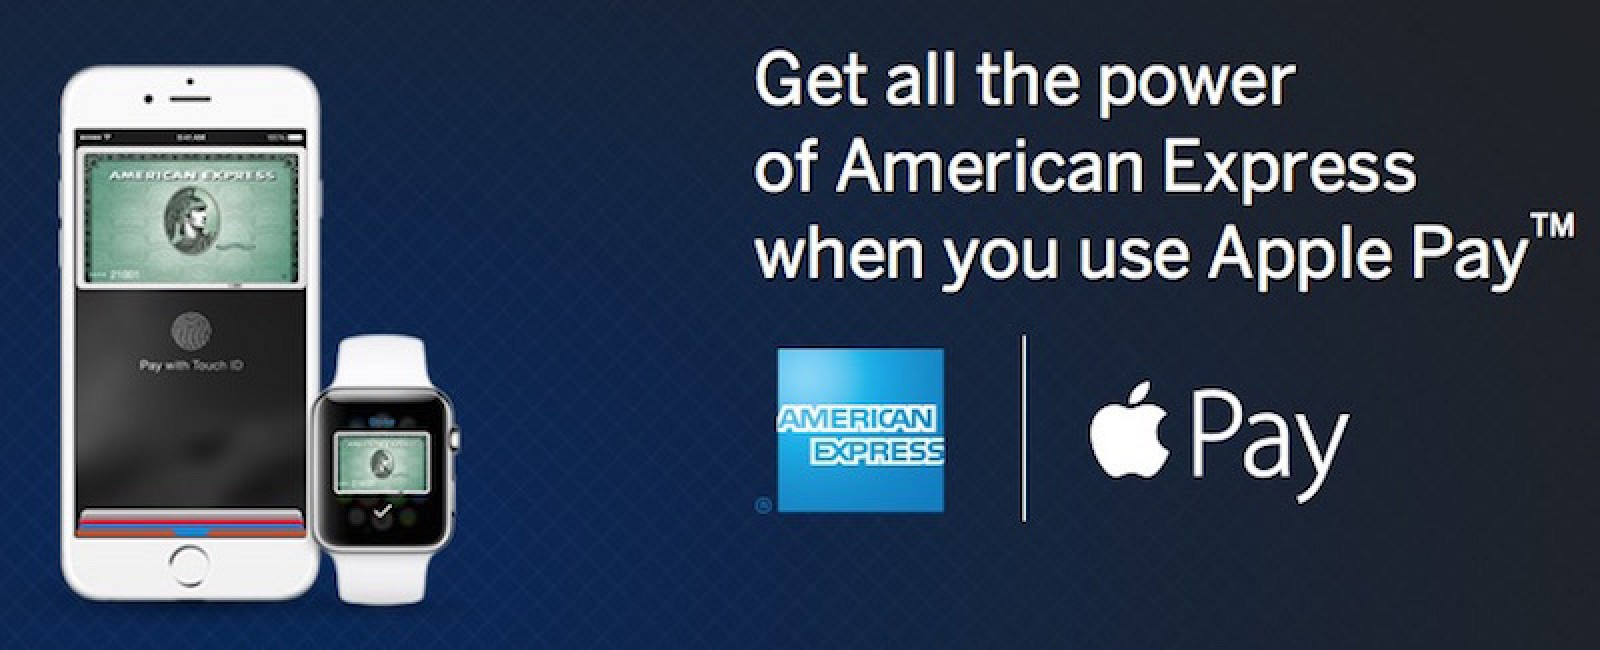 apple pay launching in canada with american express on. Black Bedroom Furniture Sets. Home Design Ideas